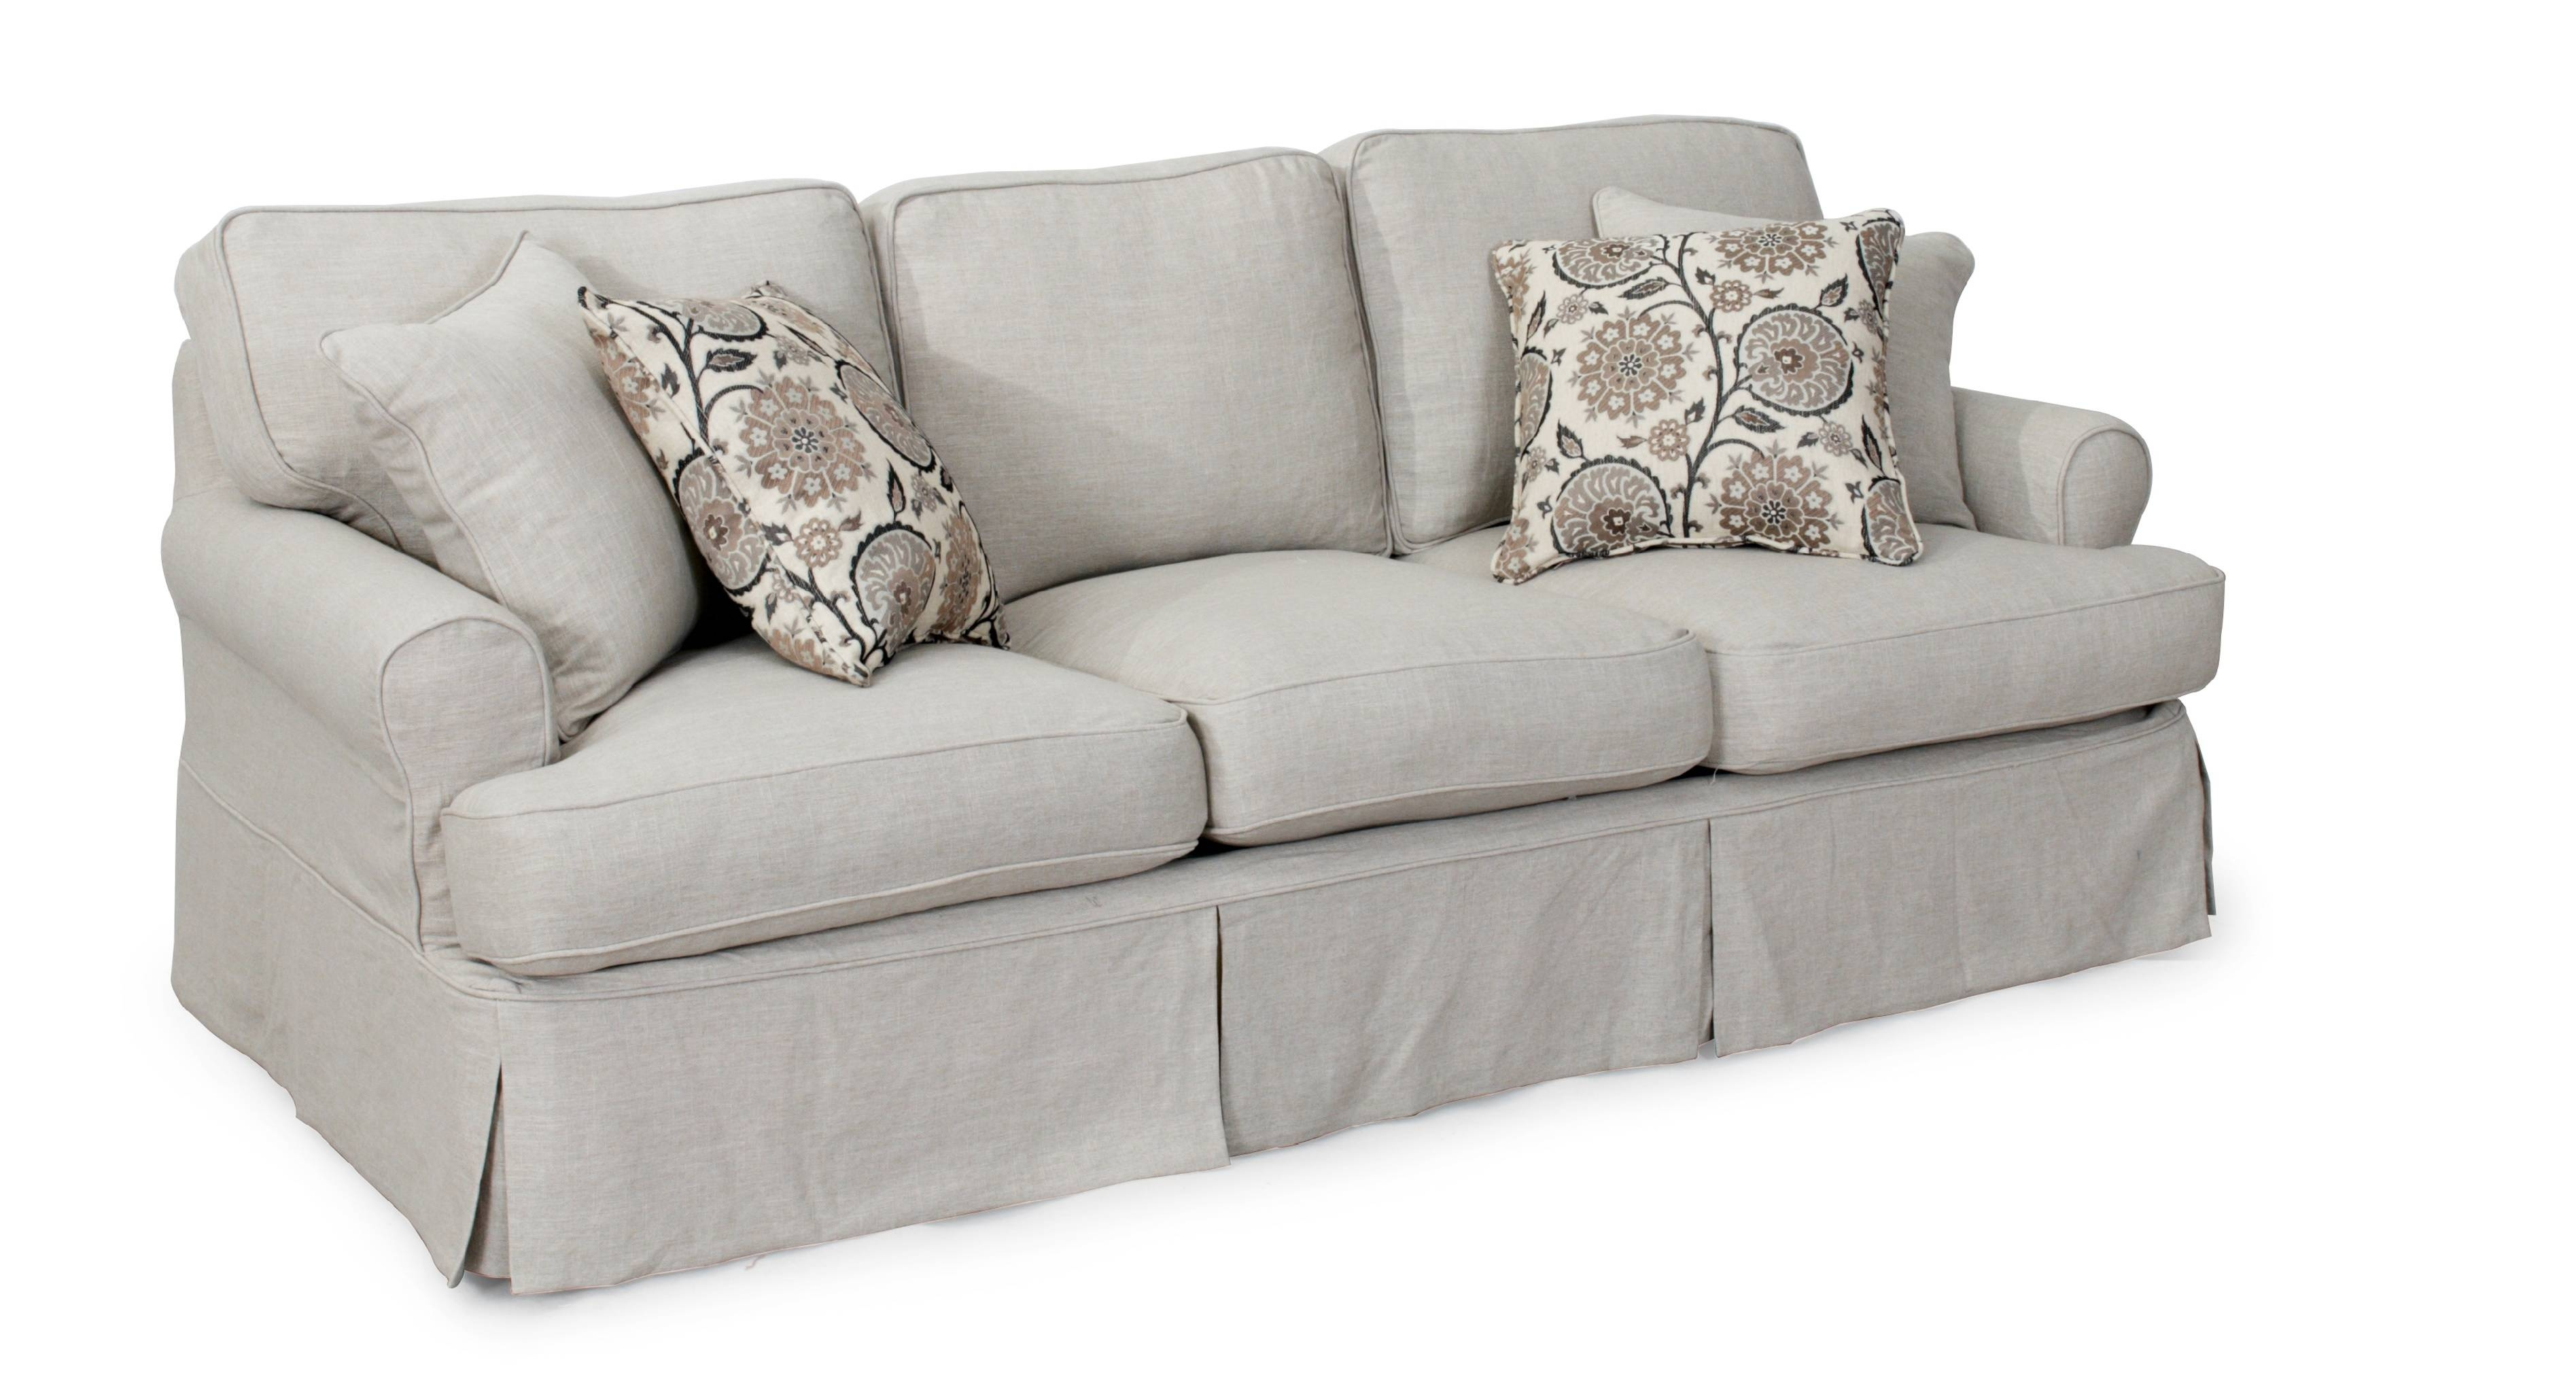 Furniture: Loveseat Slipcover Reviews | Loveseat Slipcover T Pertaining To Slipcovers For 3 Cushion Sofas (Photo 2 of 15)